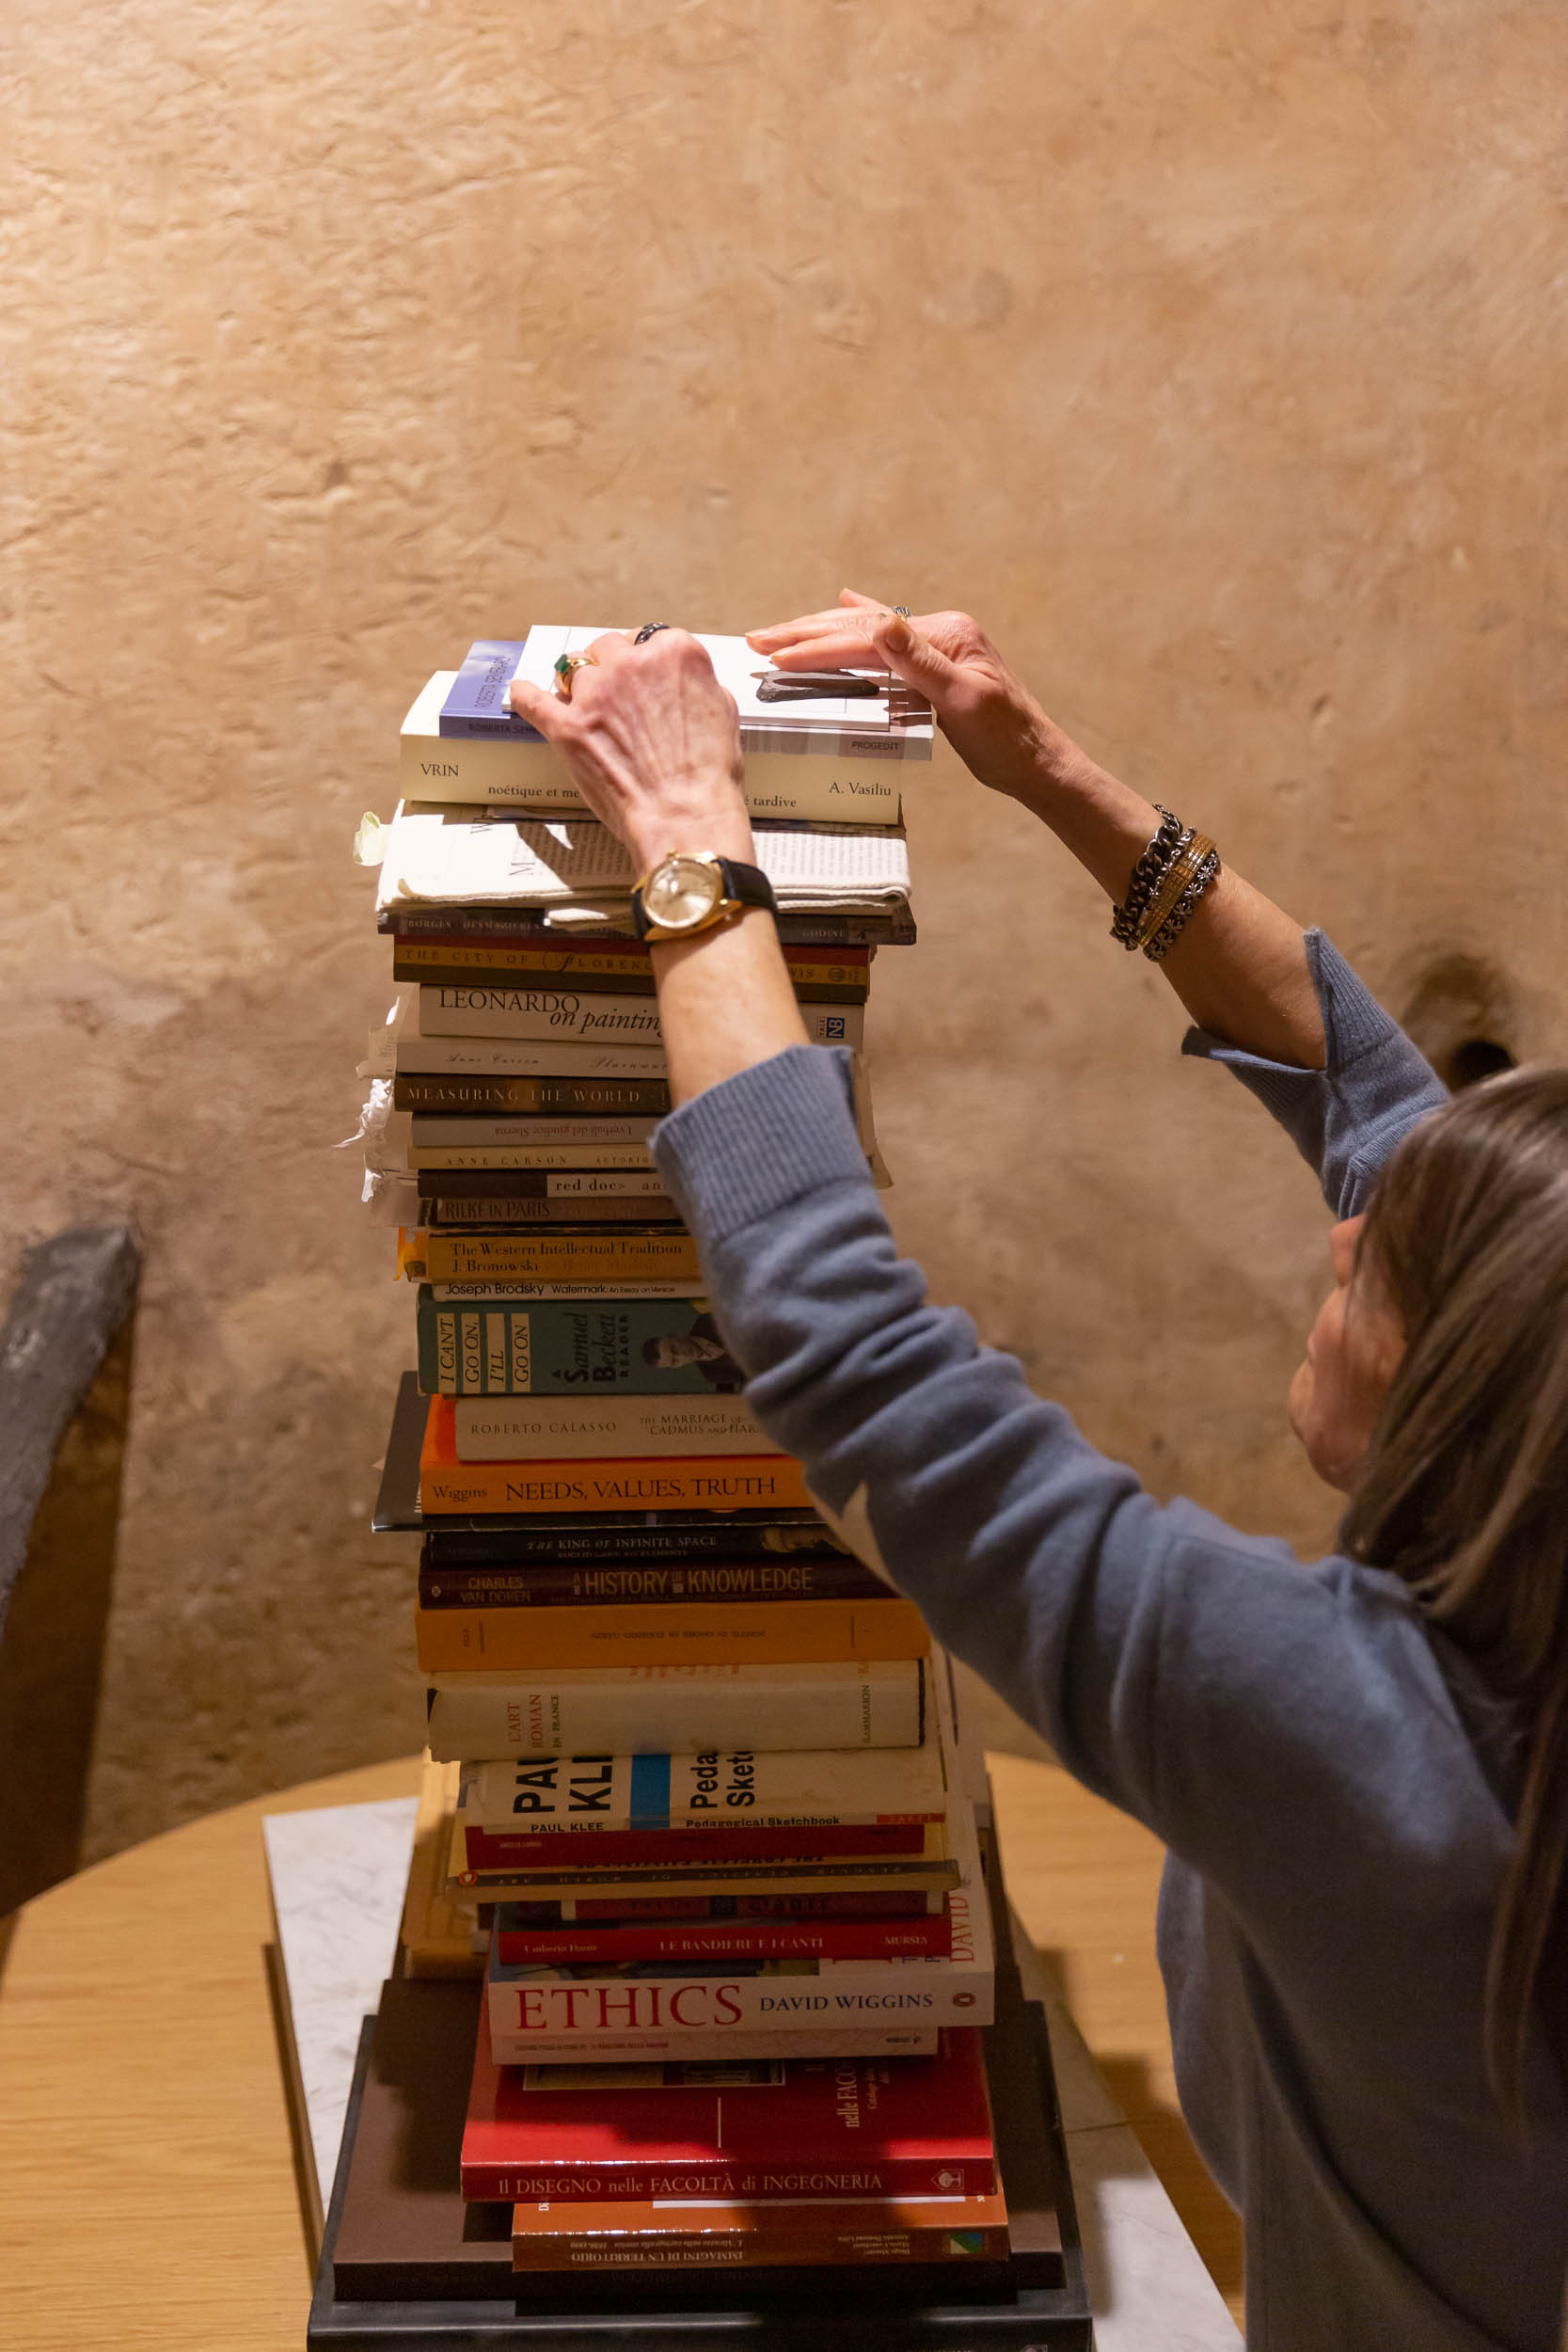 Karshan placing two meteorites at the top of her Tower for L'Aquila - a tower of books comprised of books from her own library and from L'Aquila's library. Photography: Nora Novak.